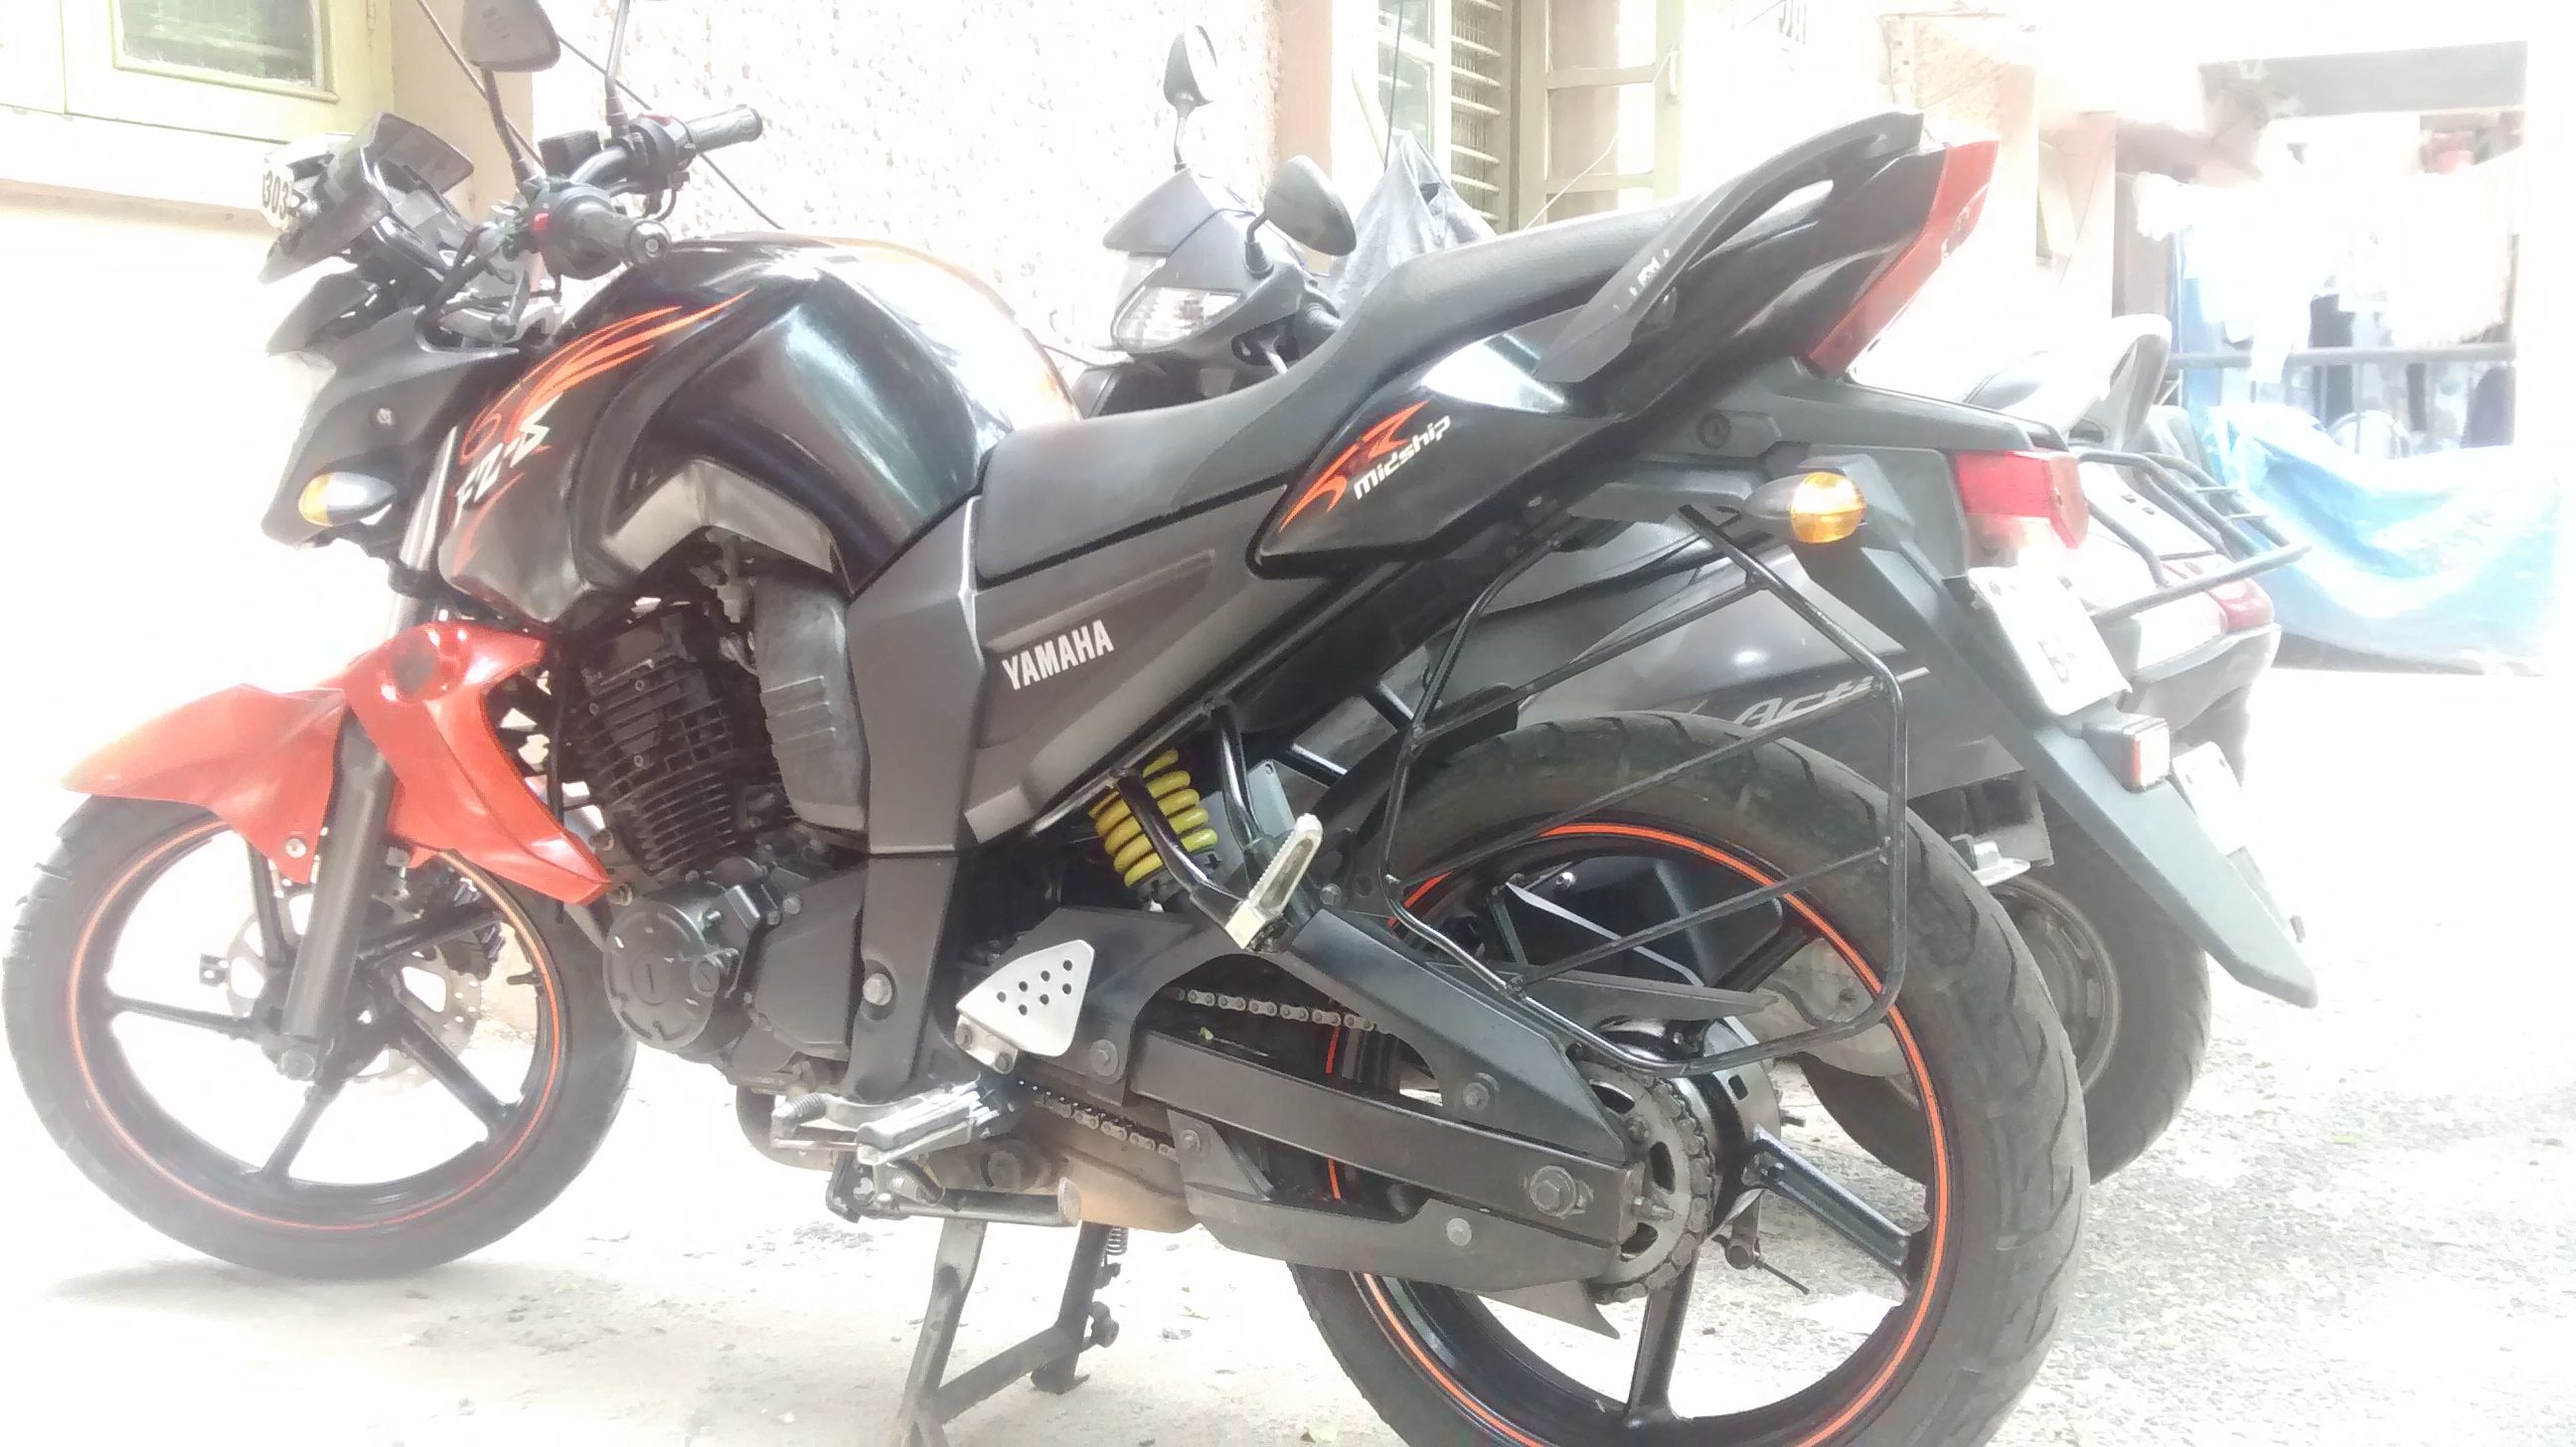 Yamaha Fz From Chennai Is Up For Sale More Details On The